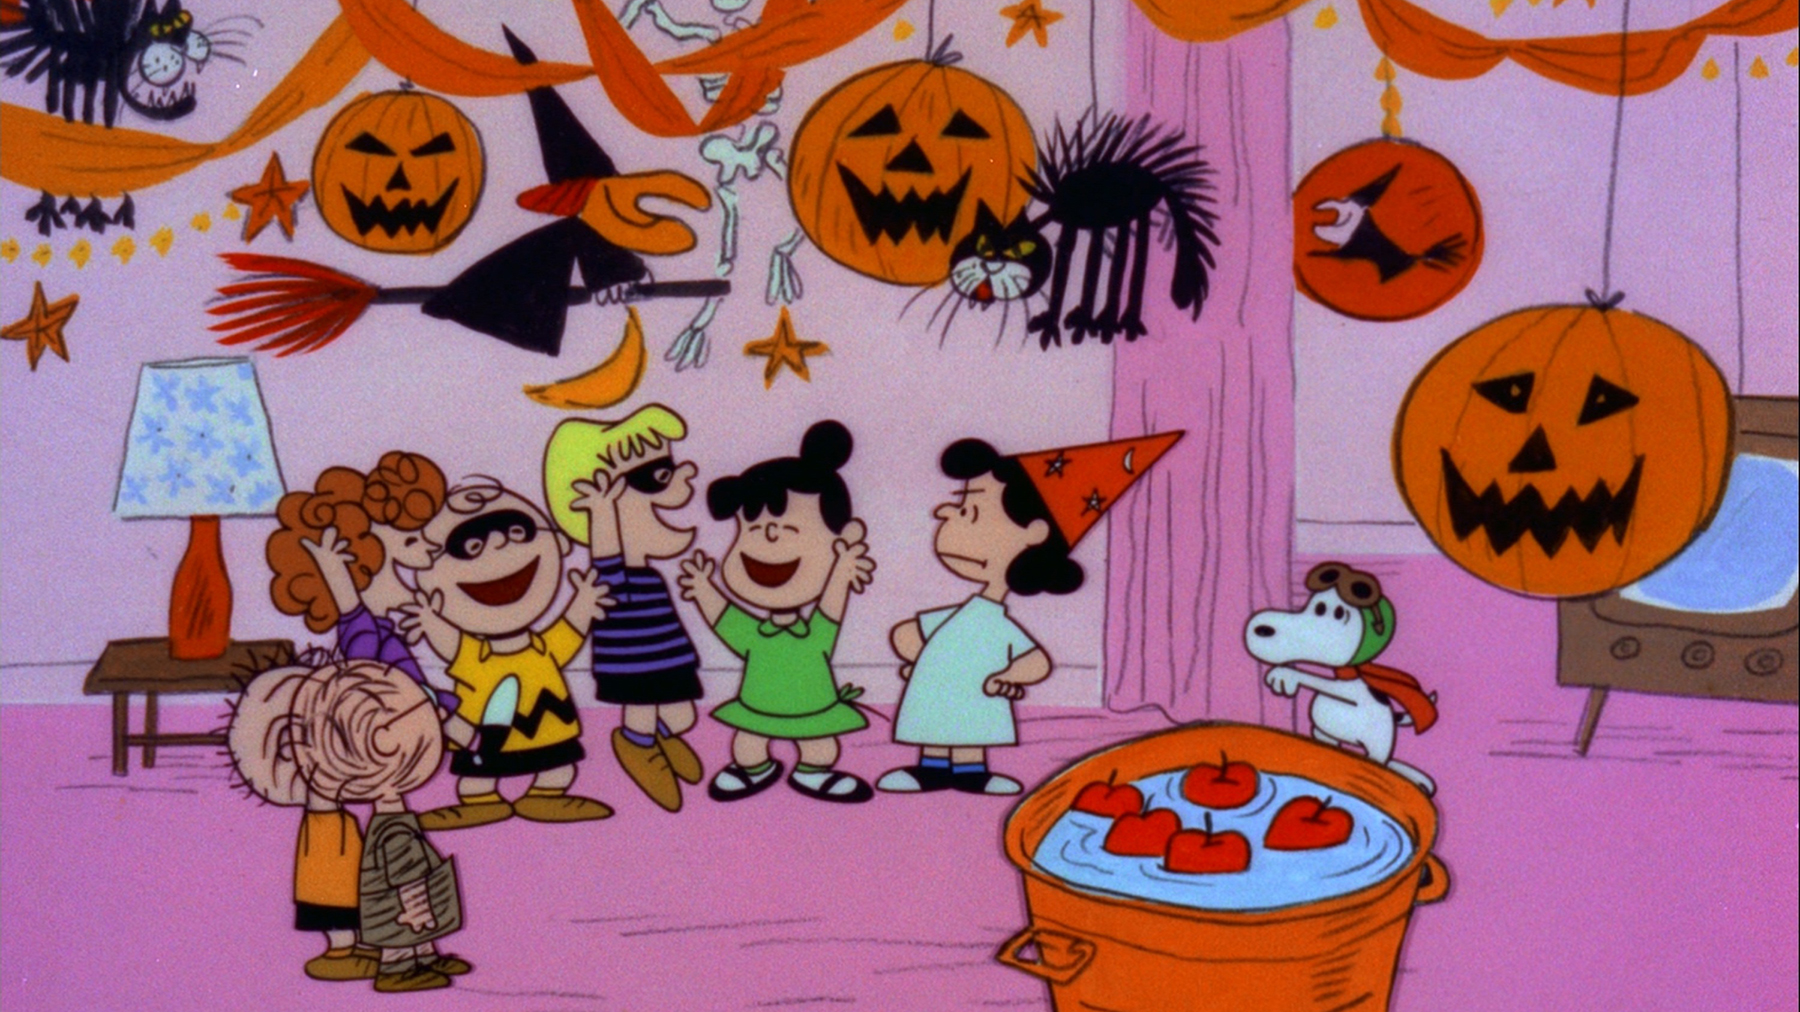 'It's the Great Pumpkin Charlie Brown' Will Air Twice This Year